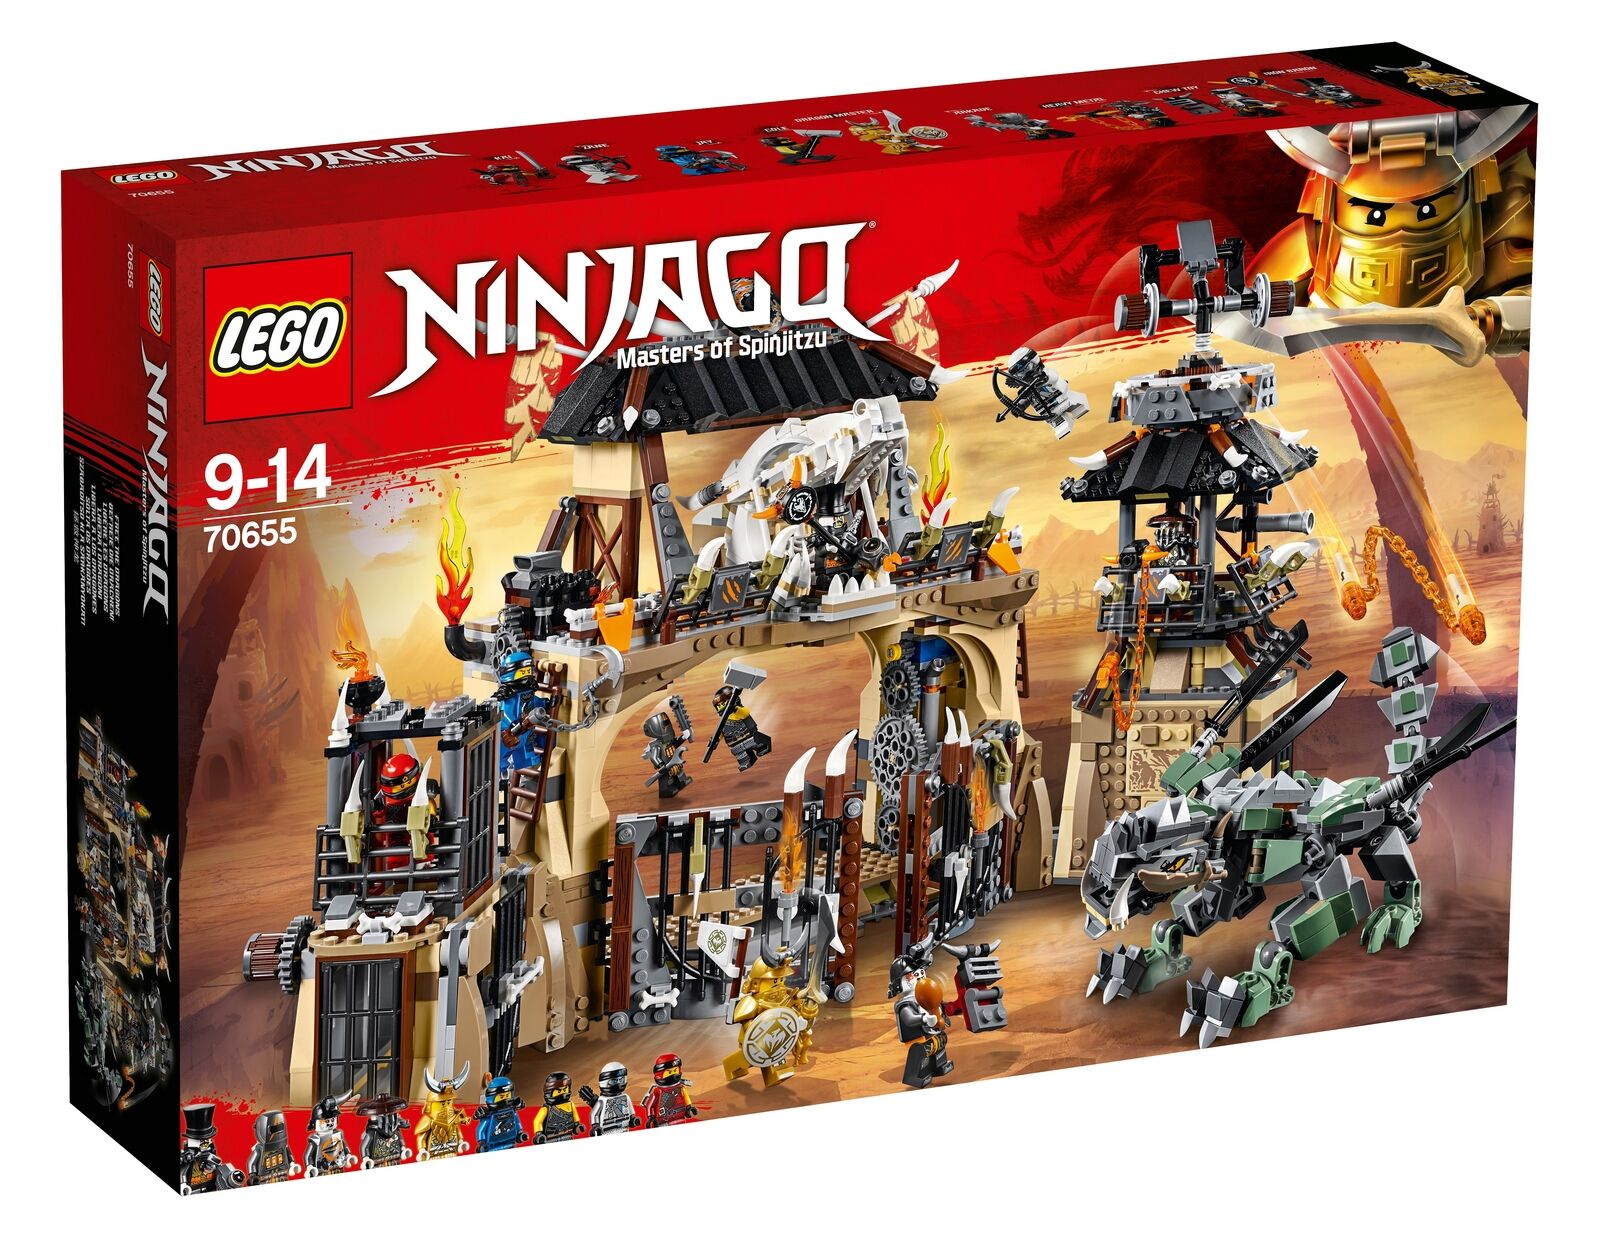 70655 LEGO Ninjago Dragon Pit 1660 Pieces Age 9+ New Release For 2018